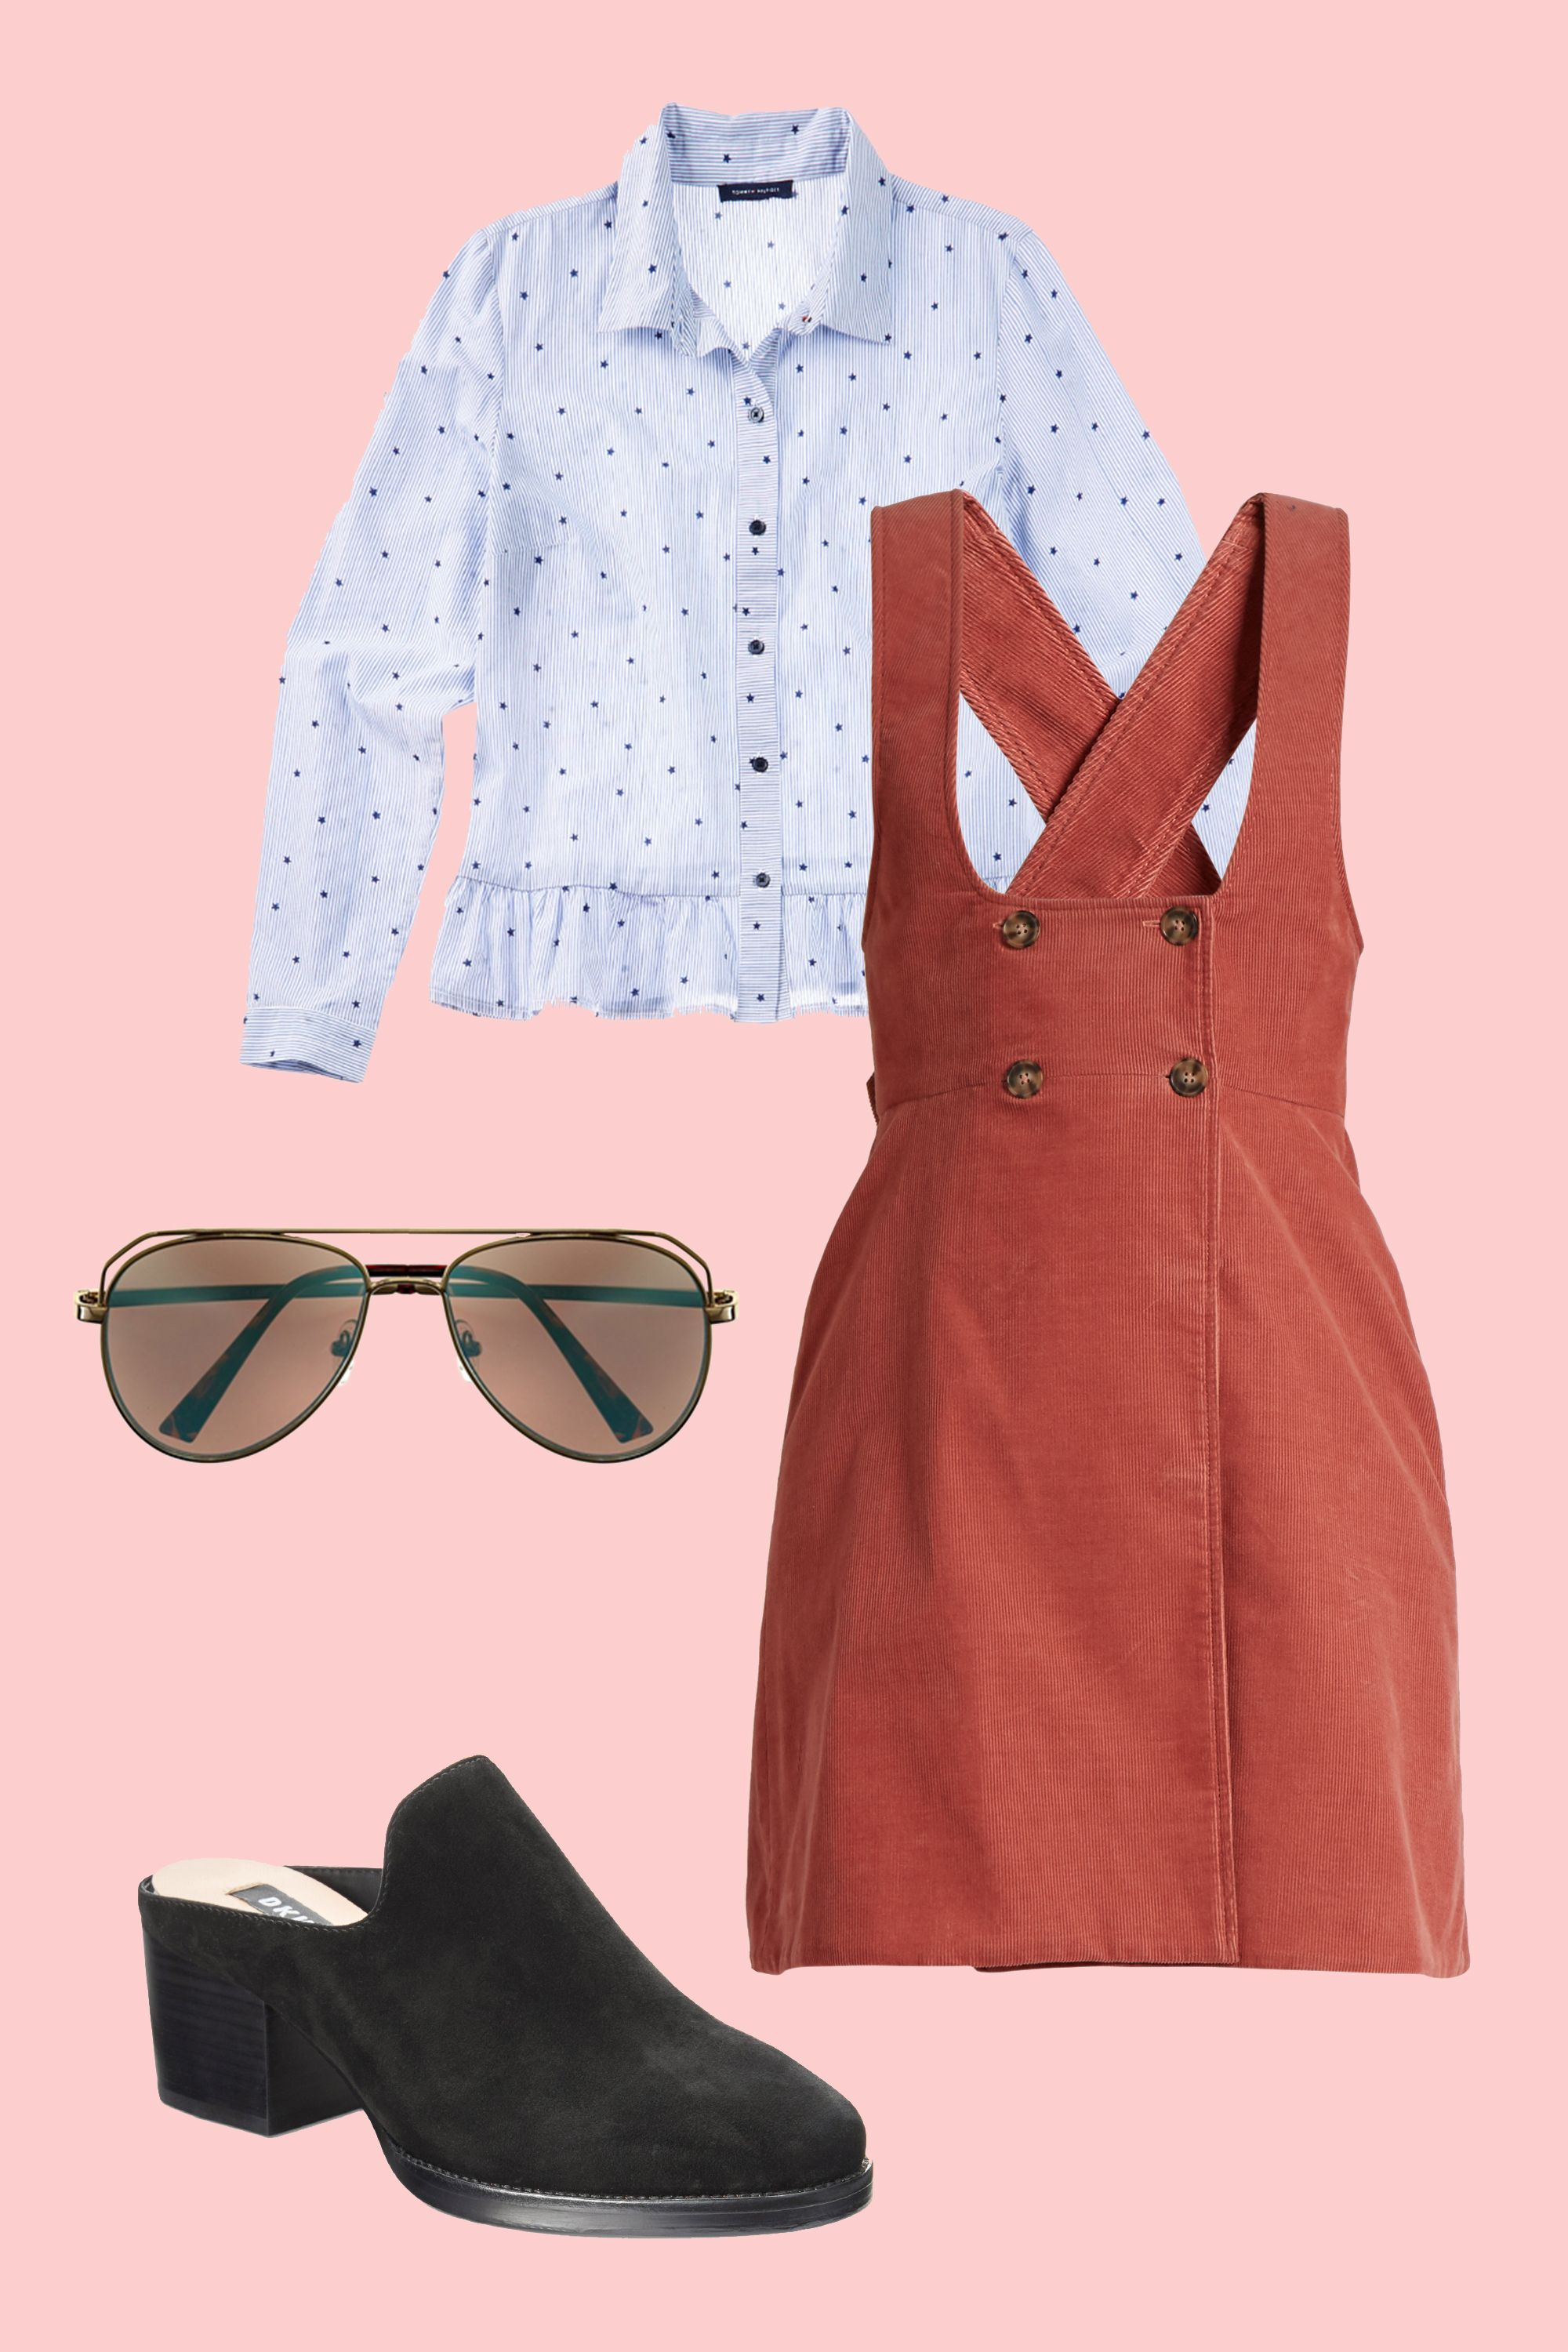 "<p>A corduroy pinafore looks all grown up layered over a collared shirt and paired with suede block heels. Tinted aviator shades complete the nostalgic vibe <em data-redactor-tag=""em"" data-verified=""redactor"">and</em> complement the dress's earthy hue. </p><p><strong data-redactor-tag=""strong"">BUY IT:</strong> Tommy Hilfiger shirt, $70; <a href=""https://www.macys.com/shop/product/tommy-hilfiger-cotton-ruffled-shirt-created-for-macys?ID=4842064&cm_mmc=carat_dis-_-sep2_nopro_auth_rtw_ffash_tentpole_display_w7080033_11696-_-1339154-_-09052017_10052017"" target=""_blank"" data-tracking-id=""recirc-text-link"">macys.com</a>. Alexa Chung dress, $406; <a href=""http://www.matchesfashion.com/products/Alexachung-Double-breasted-cotton-corduroy-pinafore-dress-1154094"" target=""_blank"" data-tracking-id=""recirc-text-link"">matchesfashion.com</a>. DKNY mule, $140; <a href=""https://www.macys.com/shop/product/dkny-times-mules-created-for-macys?ID=4842009&CategoryID=13247&swatchColor=Black&cm_mmc=carat_dis-_-sep2_nopro_auth_rtw_ffash_tentpole_display_w7080033_11696-_-1339154-_-09052017_10052017"" target=""_blank"" data-tracking-id=""recirc-text-link"">macys.com</a>. Vince Camuto sunglasses, $75; <a href=""http://www.vincecamuto.com/vince-camuto-mirror-lens-aviator-sunglasses/VC777.html"" target=""_blank"" data-tracking-id=""recirc-text-link"">vincecamuto.com</a></p>"